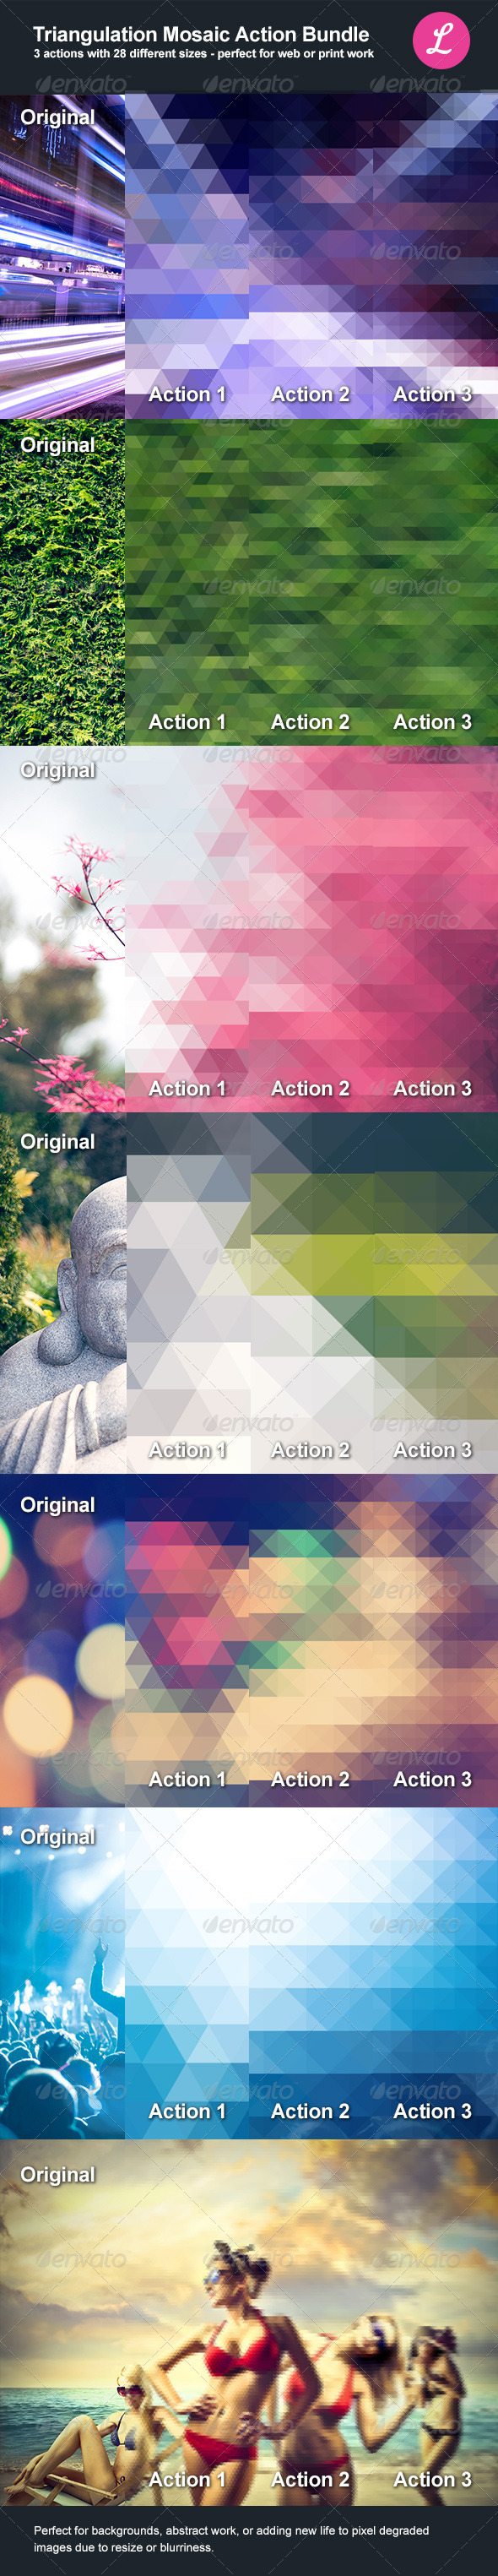 Triangulation Mosaic Bundle Actions - Utilities Actions